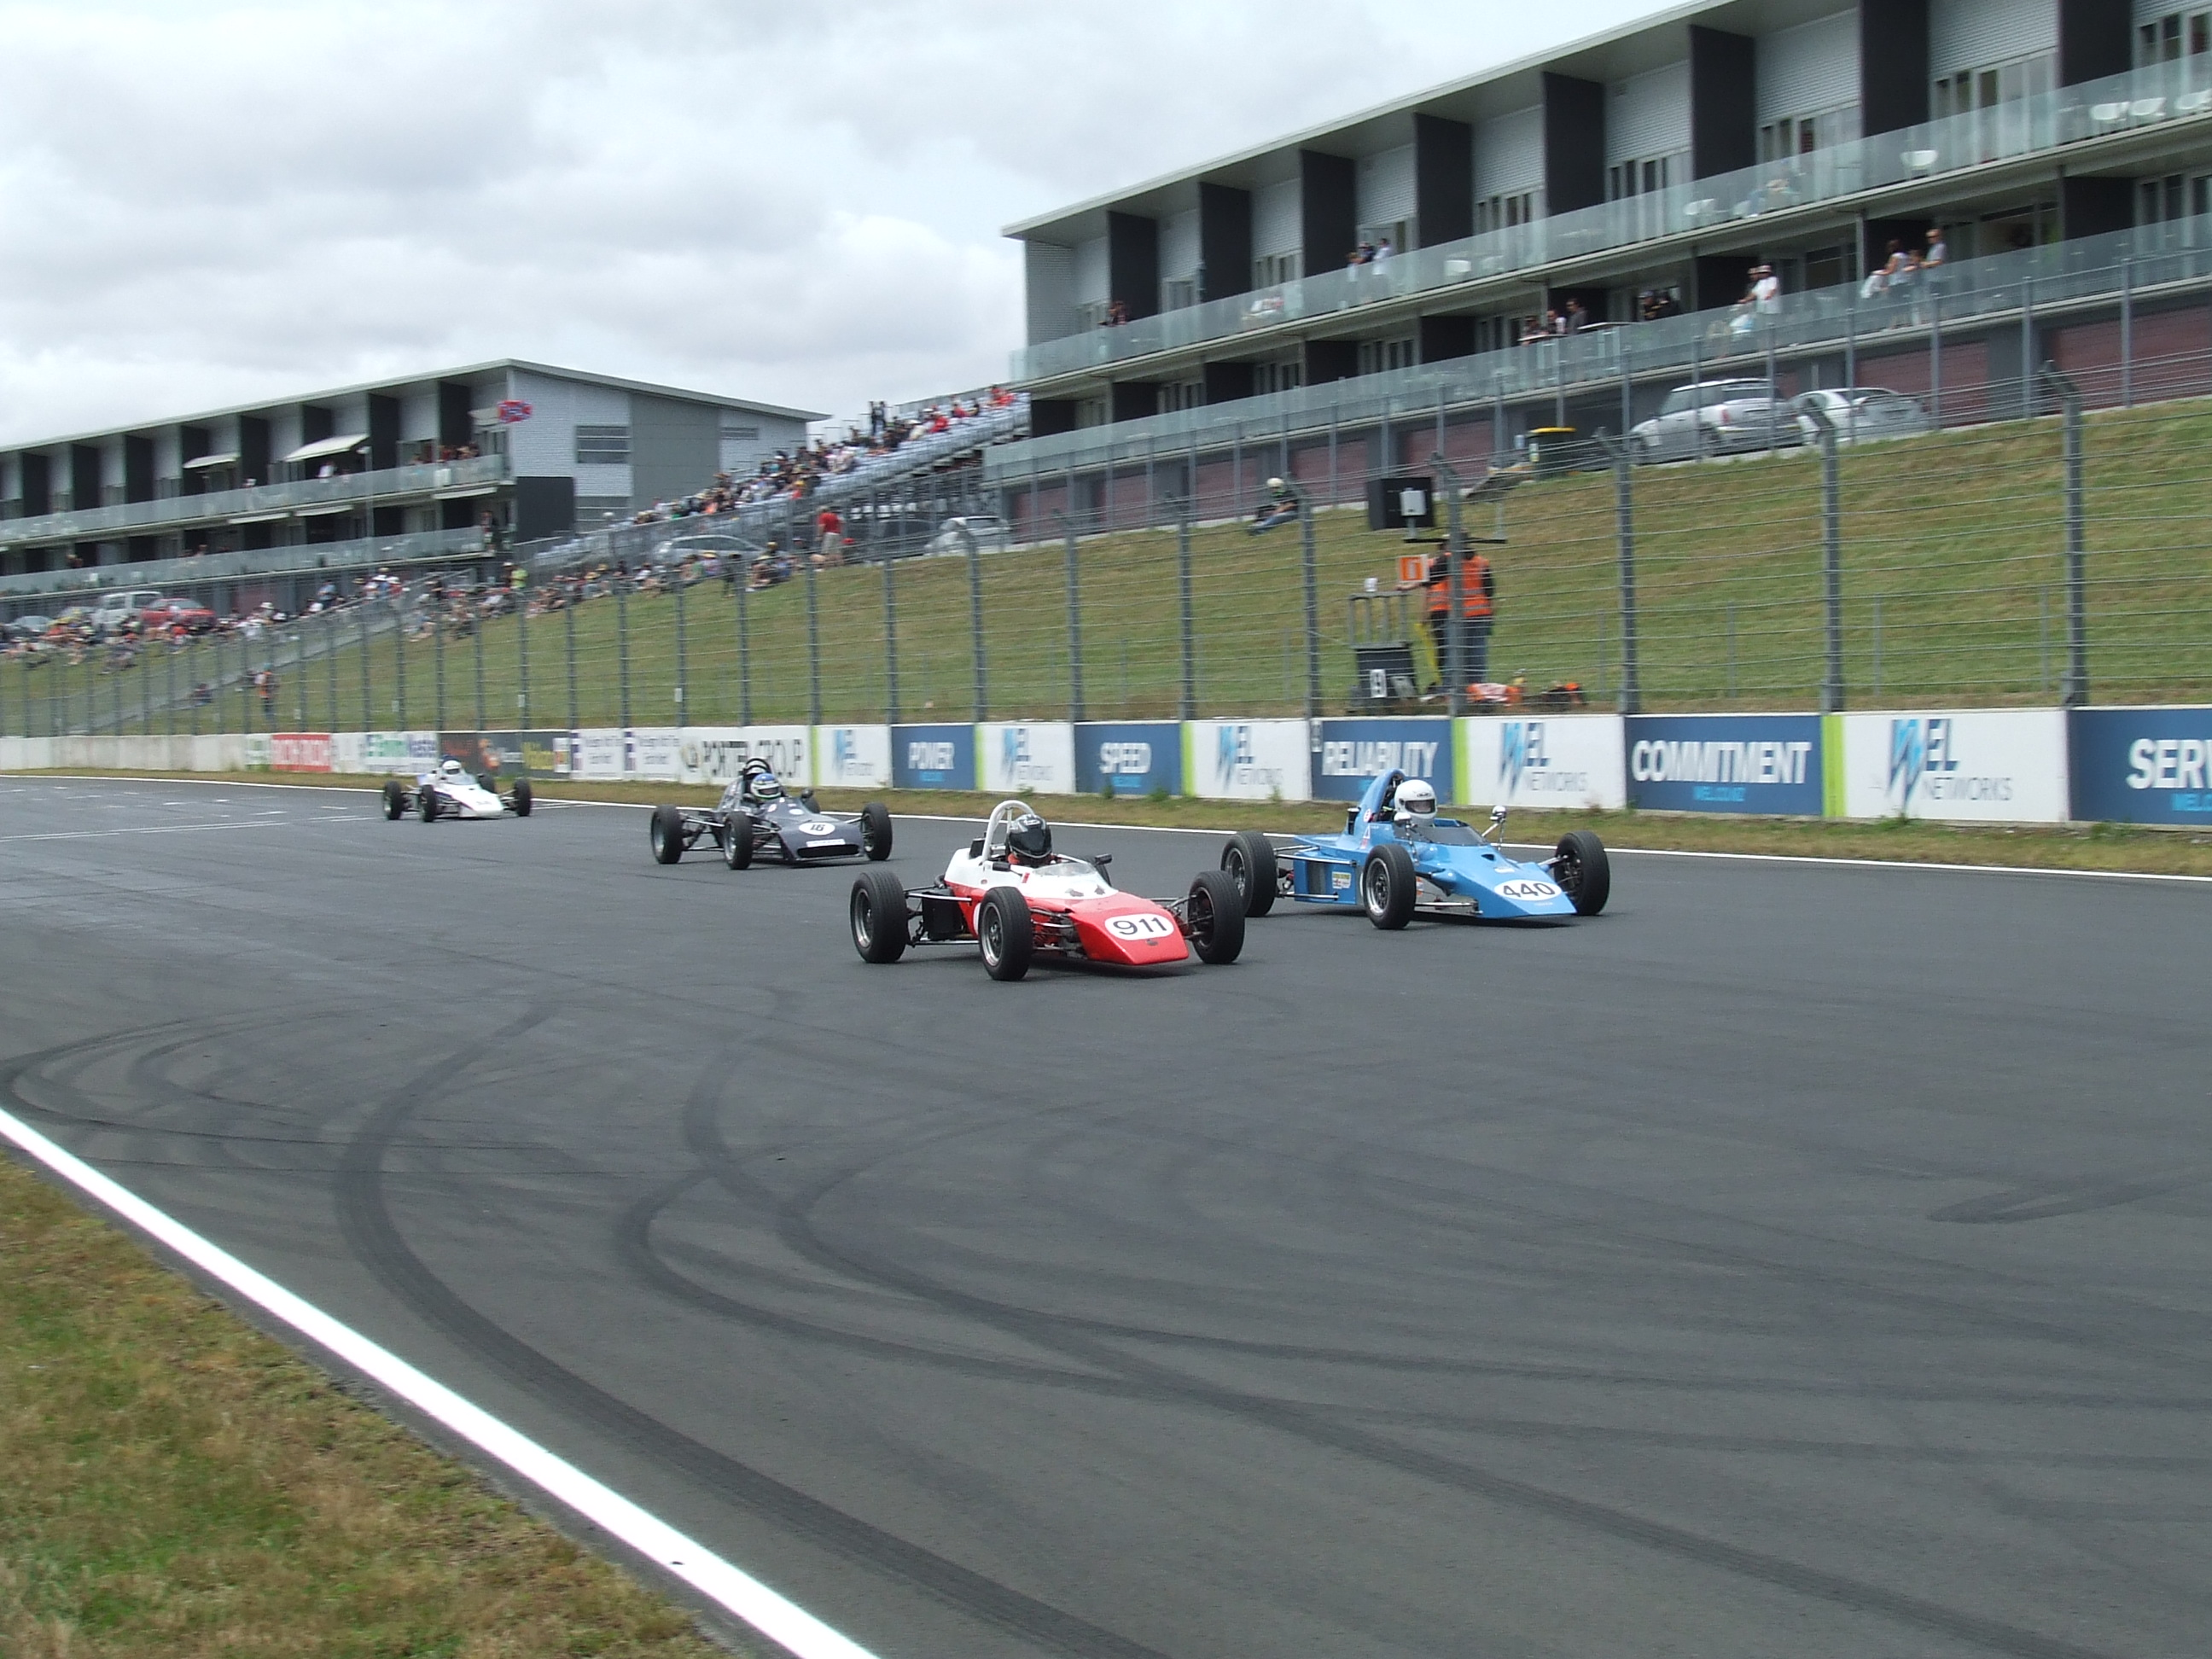 A gaggle of cars cross the start finish to start another lap